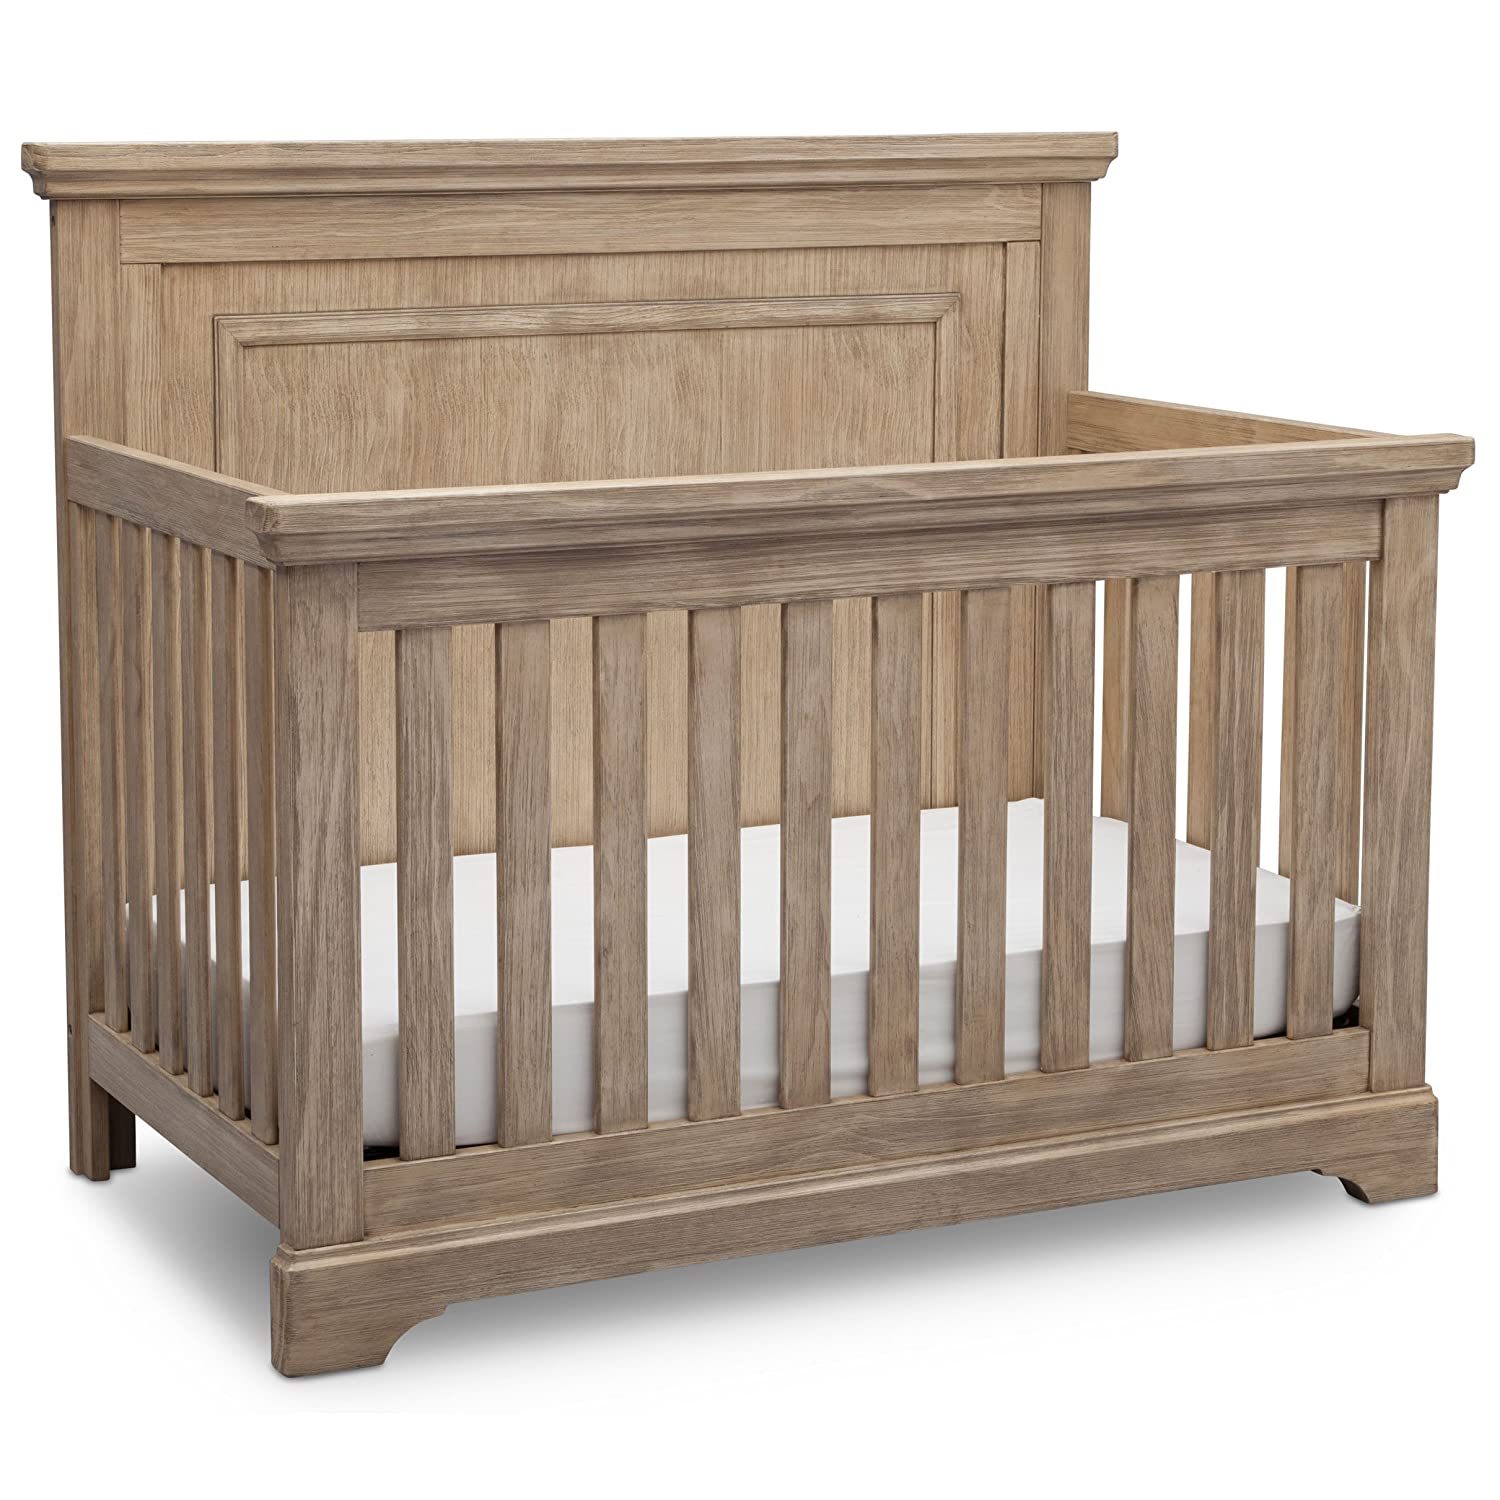 Simmons Kids SlumberTime Paloma 4-in-1 Convertible Baby Crib, Rustic Driftwood Delta Baby Dropship 328150-112